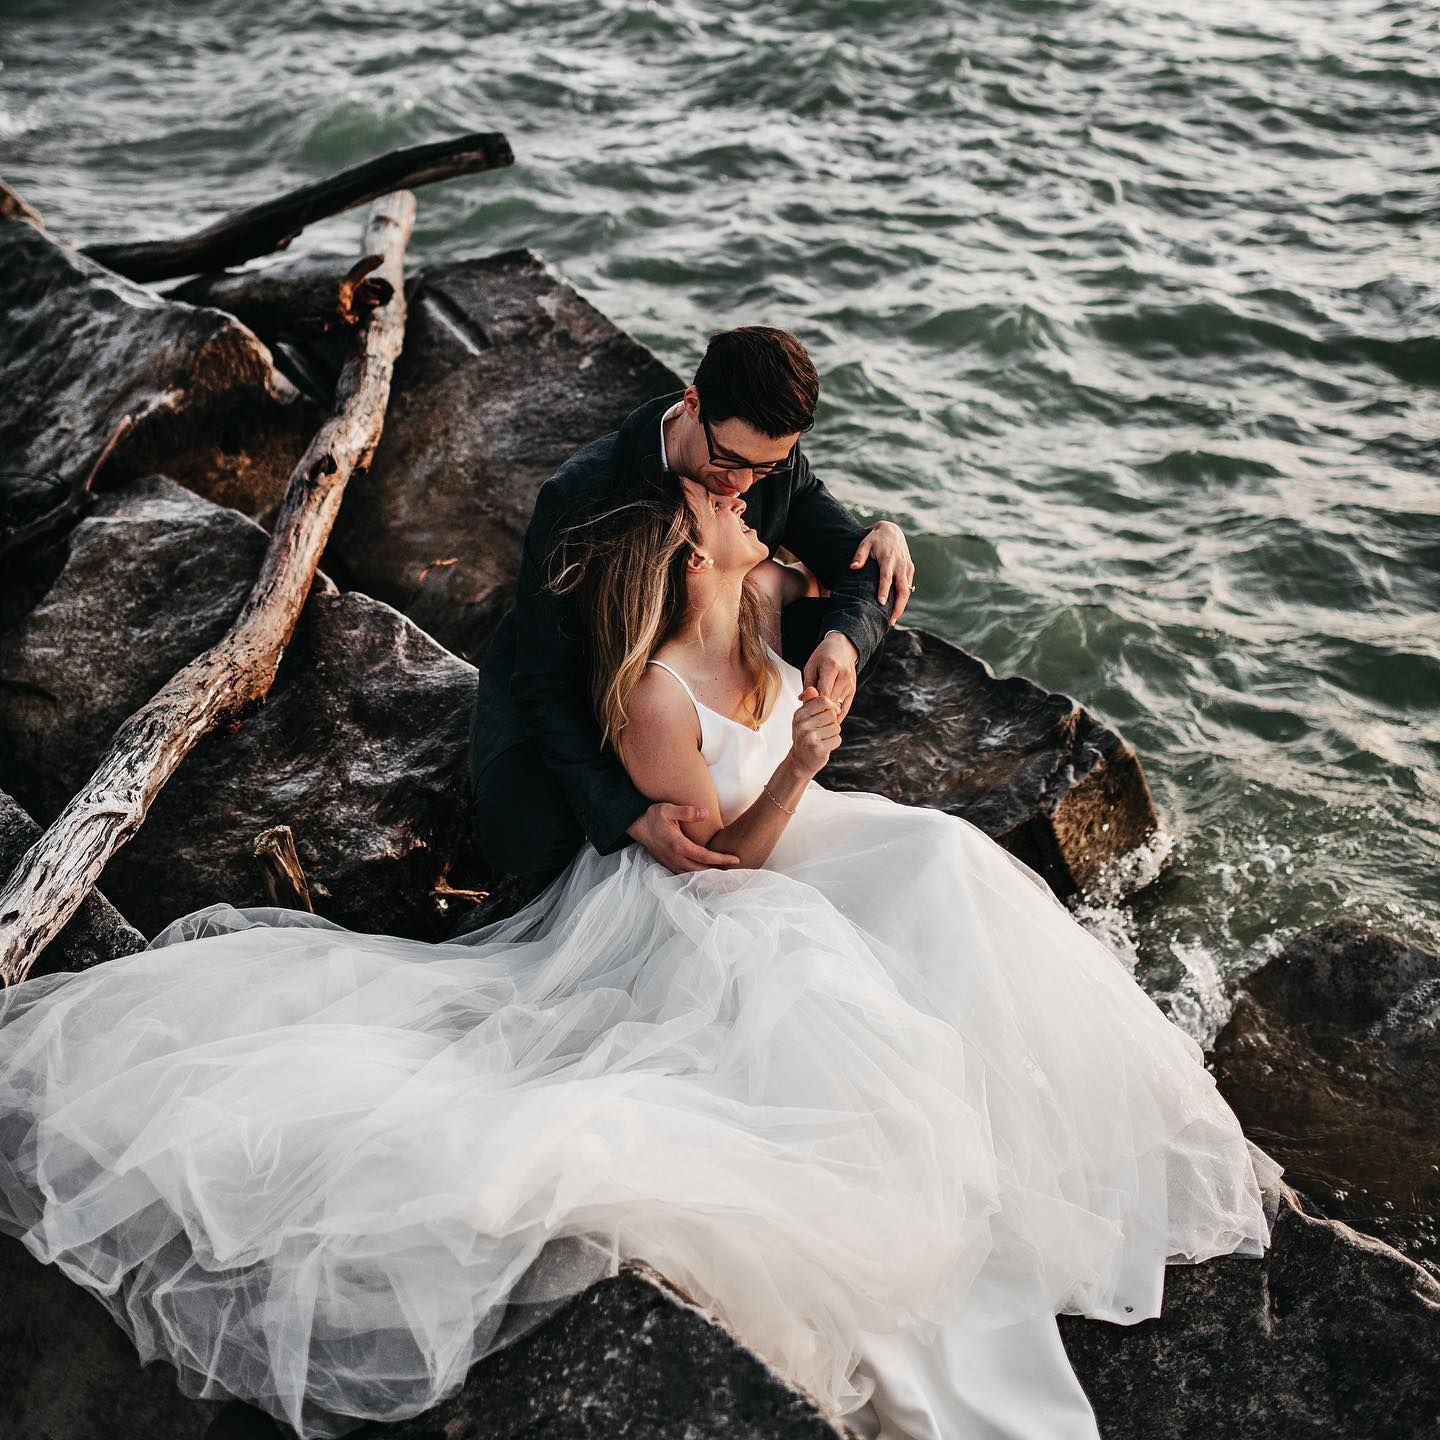 When all of the elements, wind, water, light mixed with human love come to together... some kind of magic happens 😭😭😭💛 . . . . . . . . . . #clevelandengagementphotographer #cleveland #clevelandphotographer #clevelandwedding #clevelandweddingphotographer #ohiophotographer #ohiowedding #art #nikon #nikon35mm @nikonusa #nikonwedding #photography #emotion #momentslikethese #belovedstories #akronweddingphotographer #oregonweddingphotographer #pnwphotographer #adventure